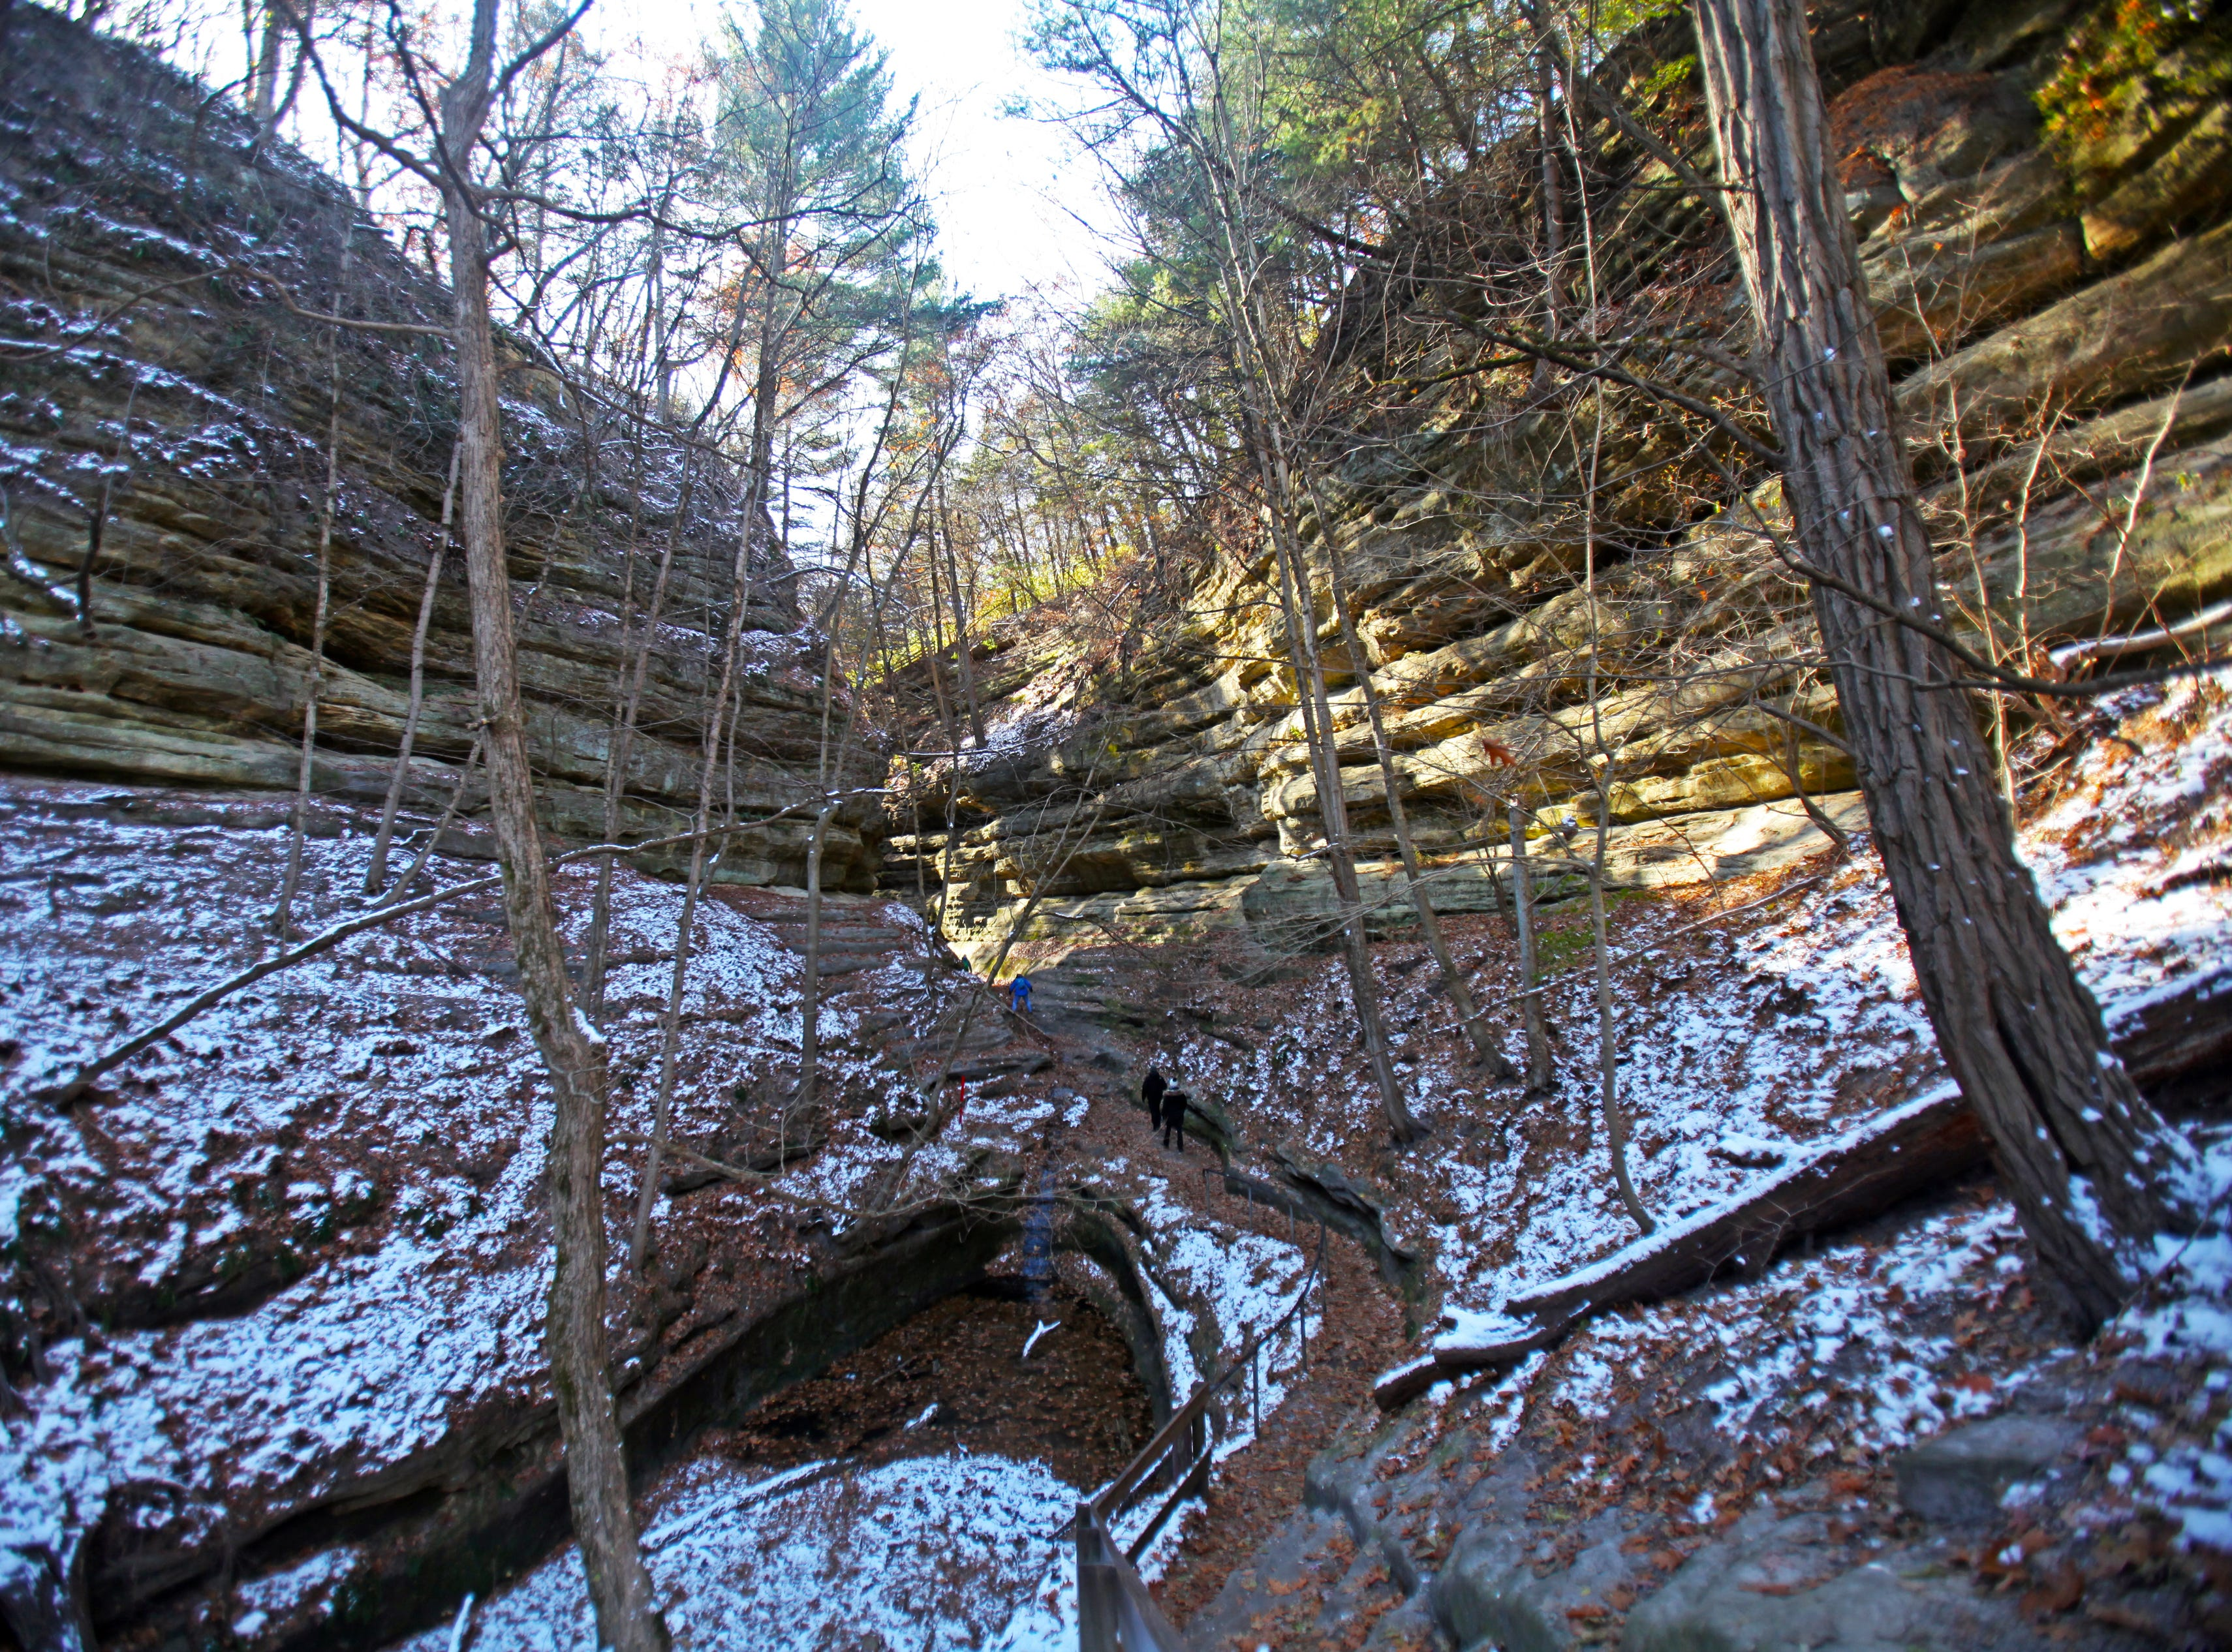 Snow covers parts of French Canyon in Starved Rock State Park outside Utica, Illinois.